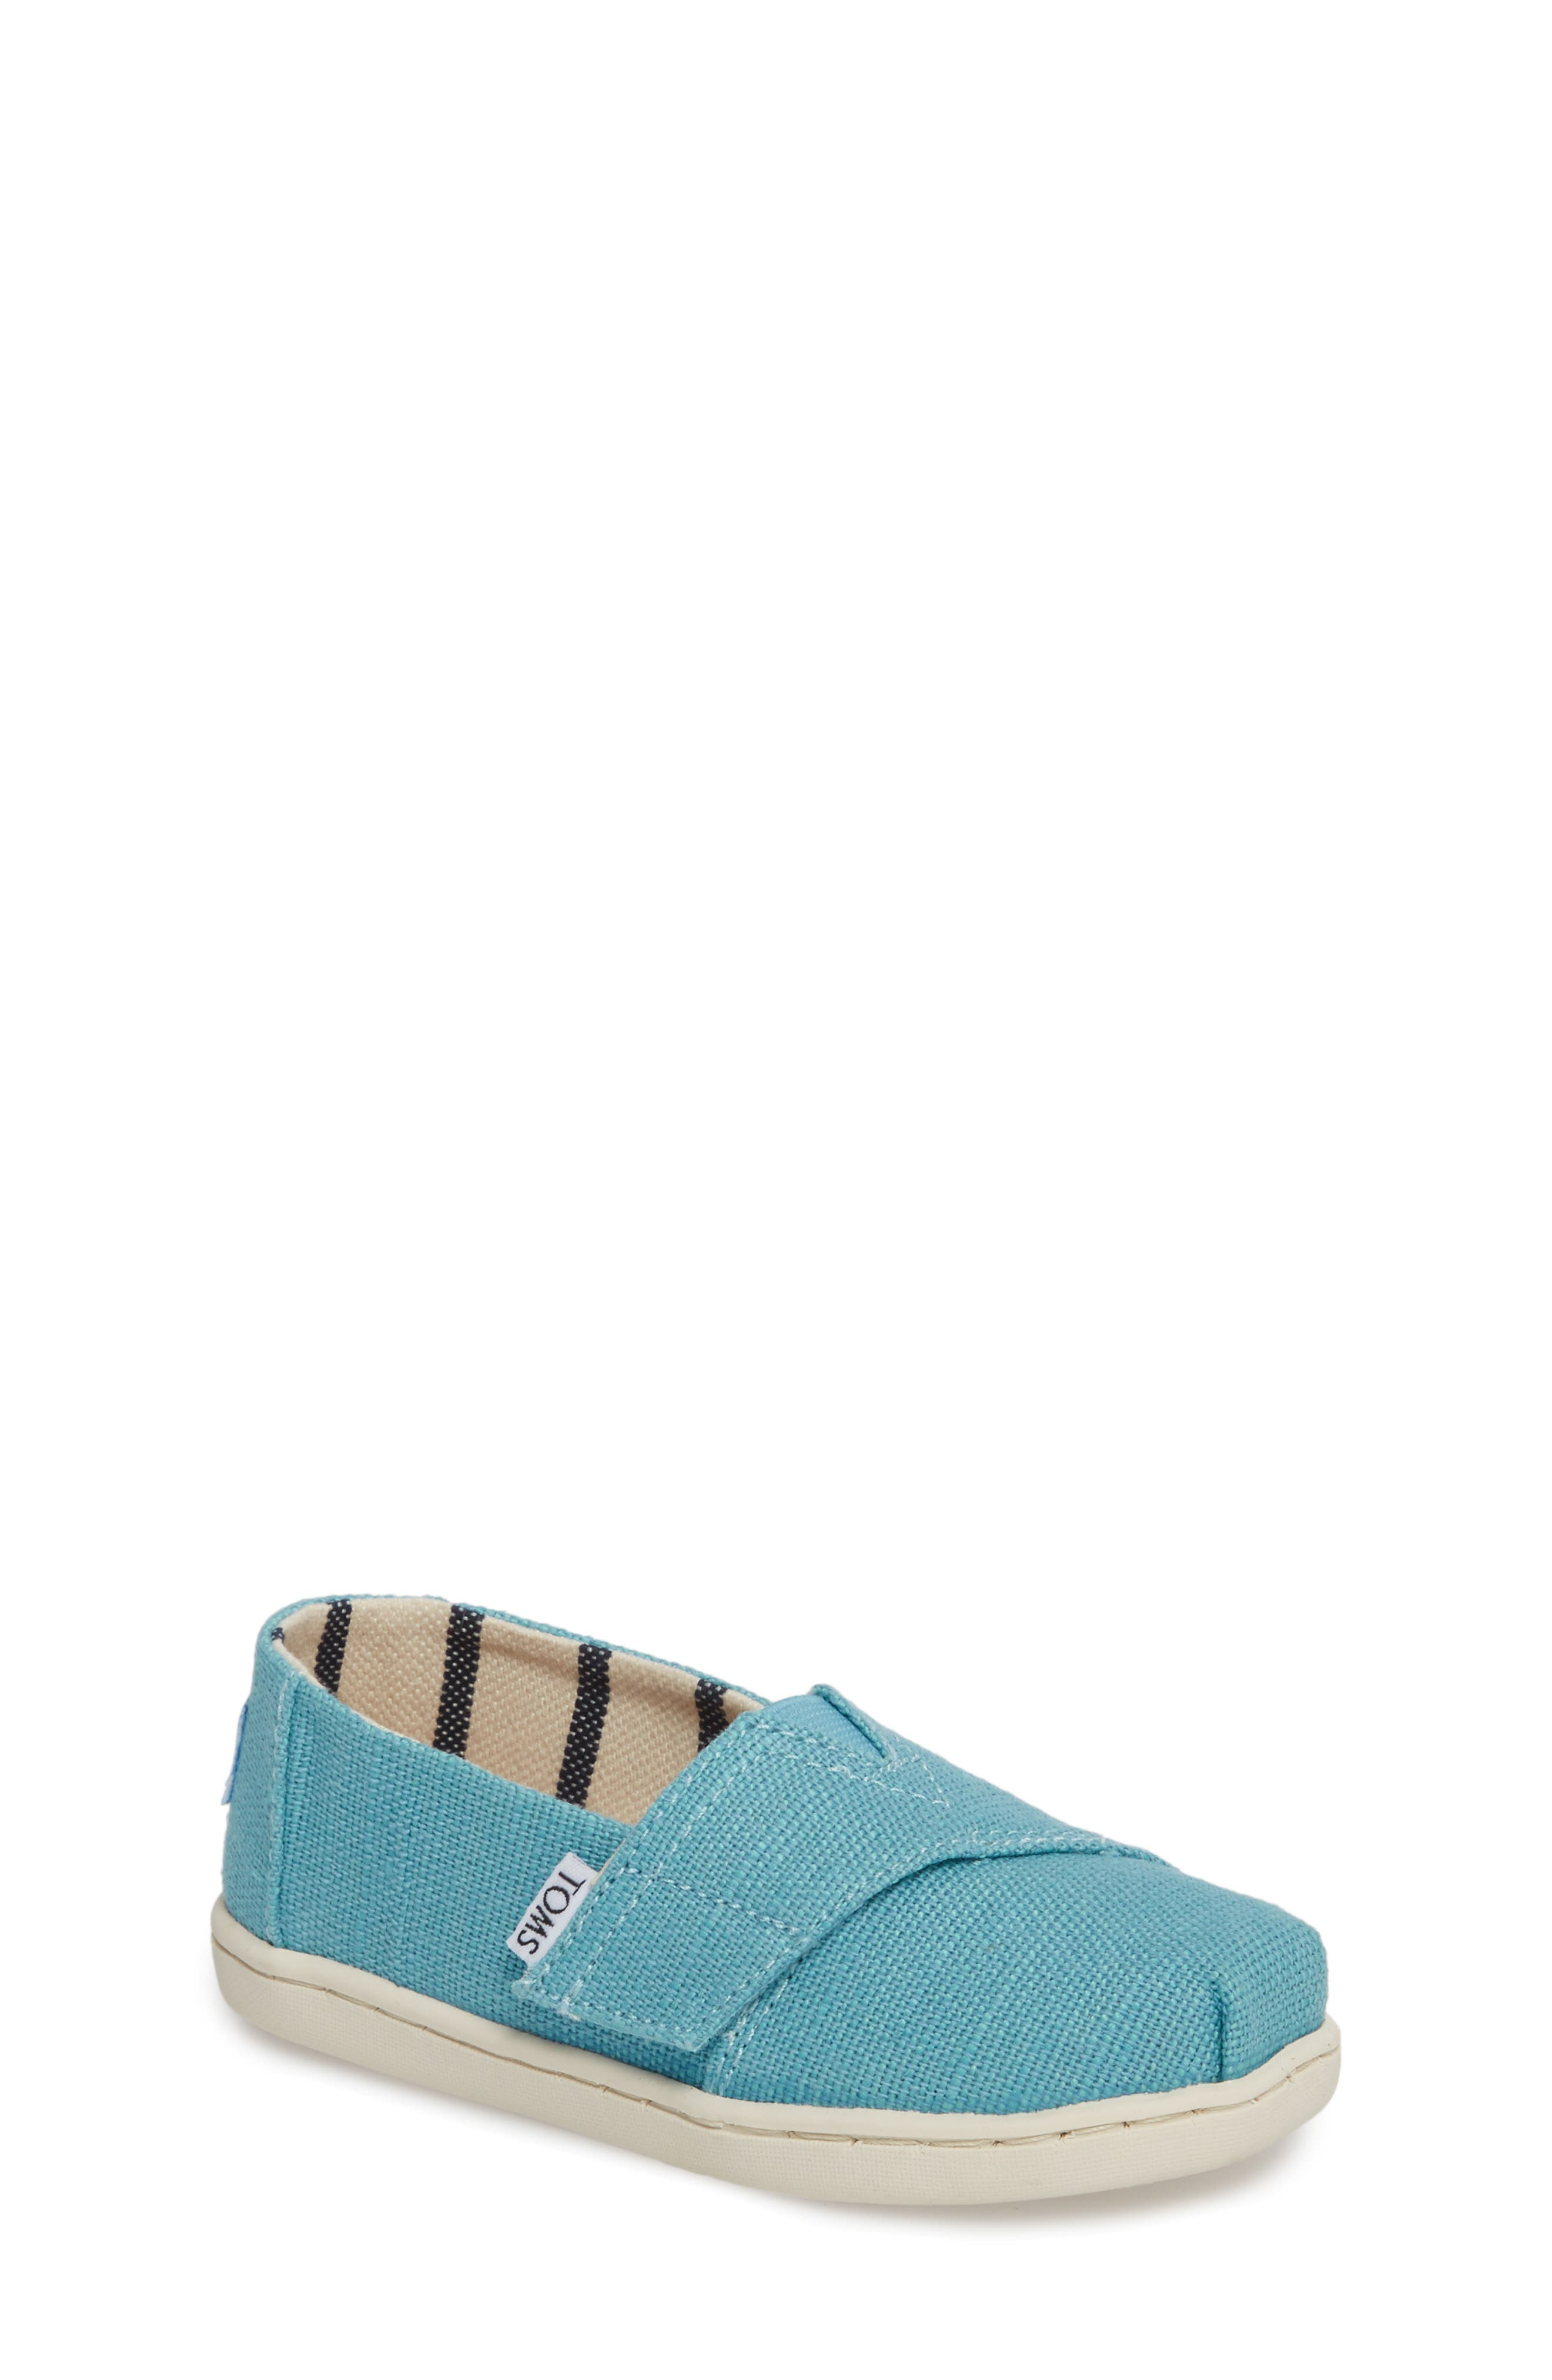 TOMS Heritage Canvas Slip-On, Main, color, 430